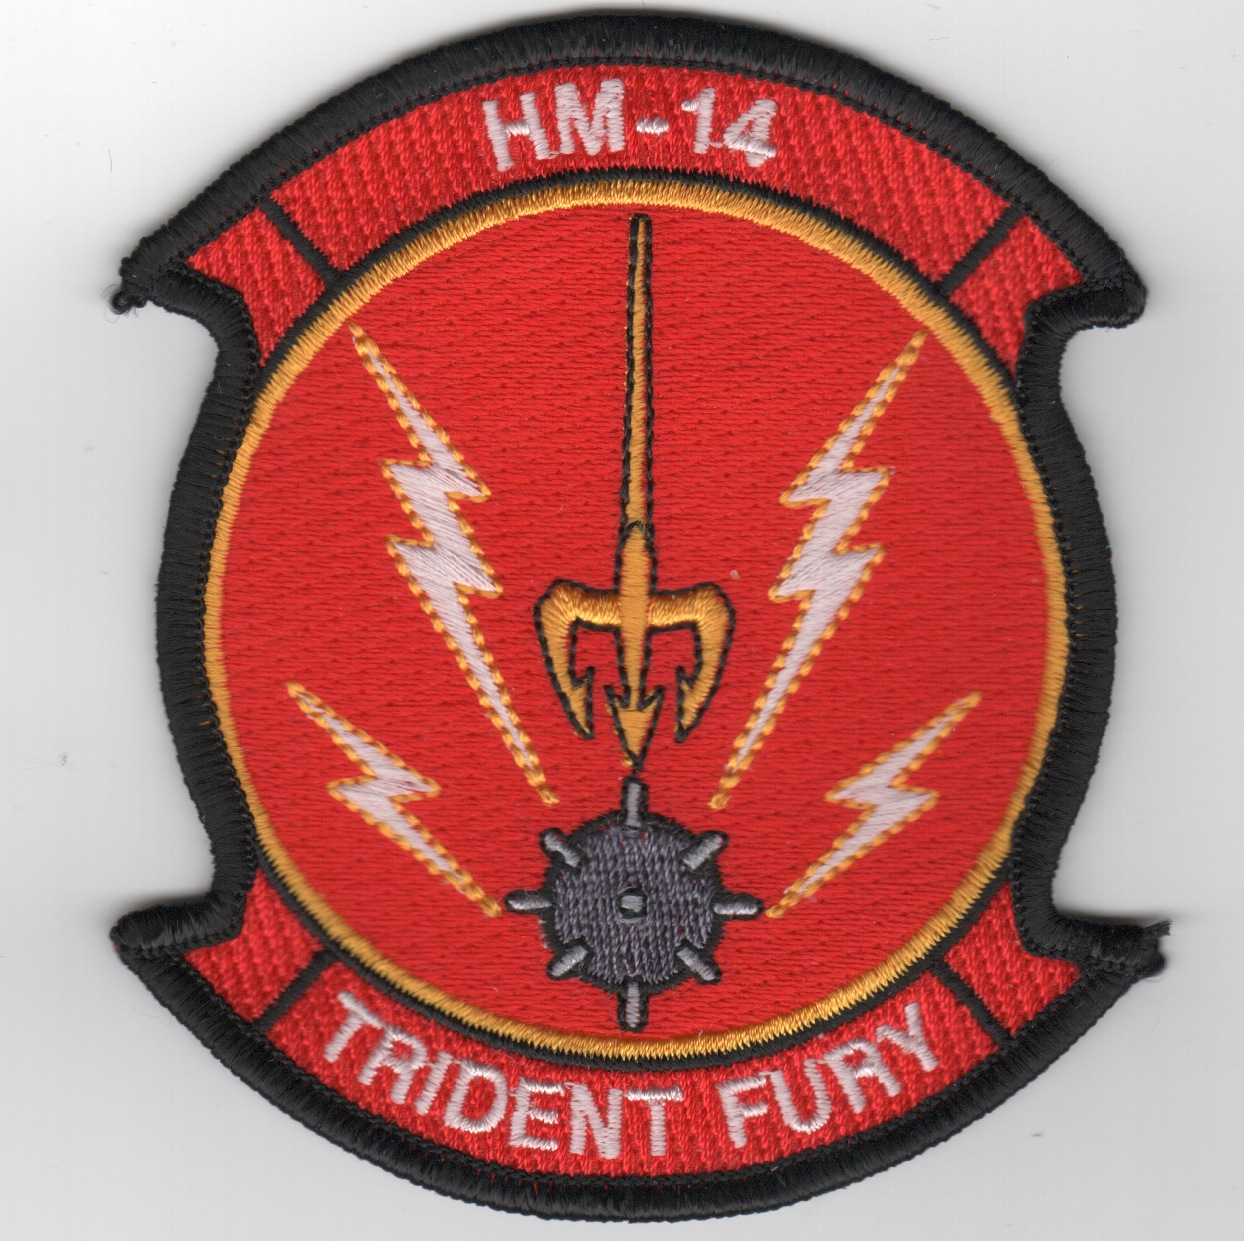 HM-14 'Trident Fury' Patch (Red)